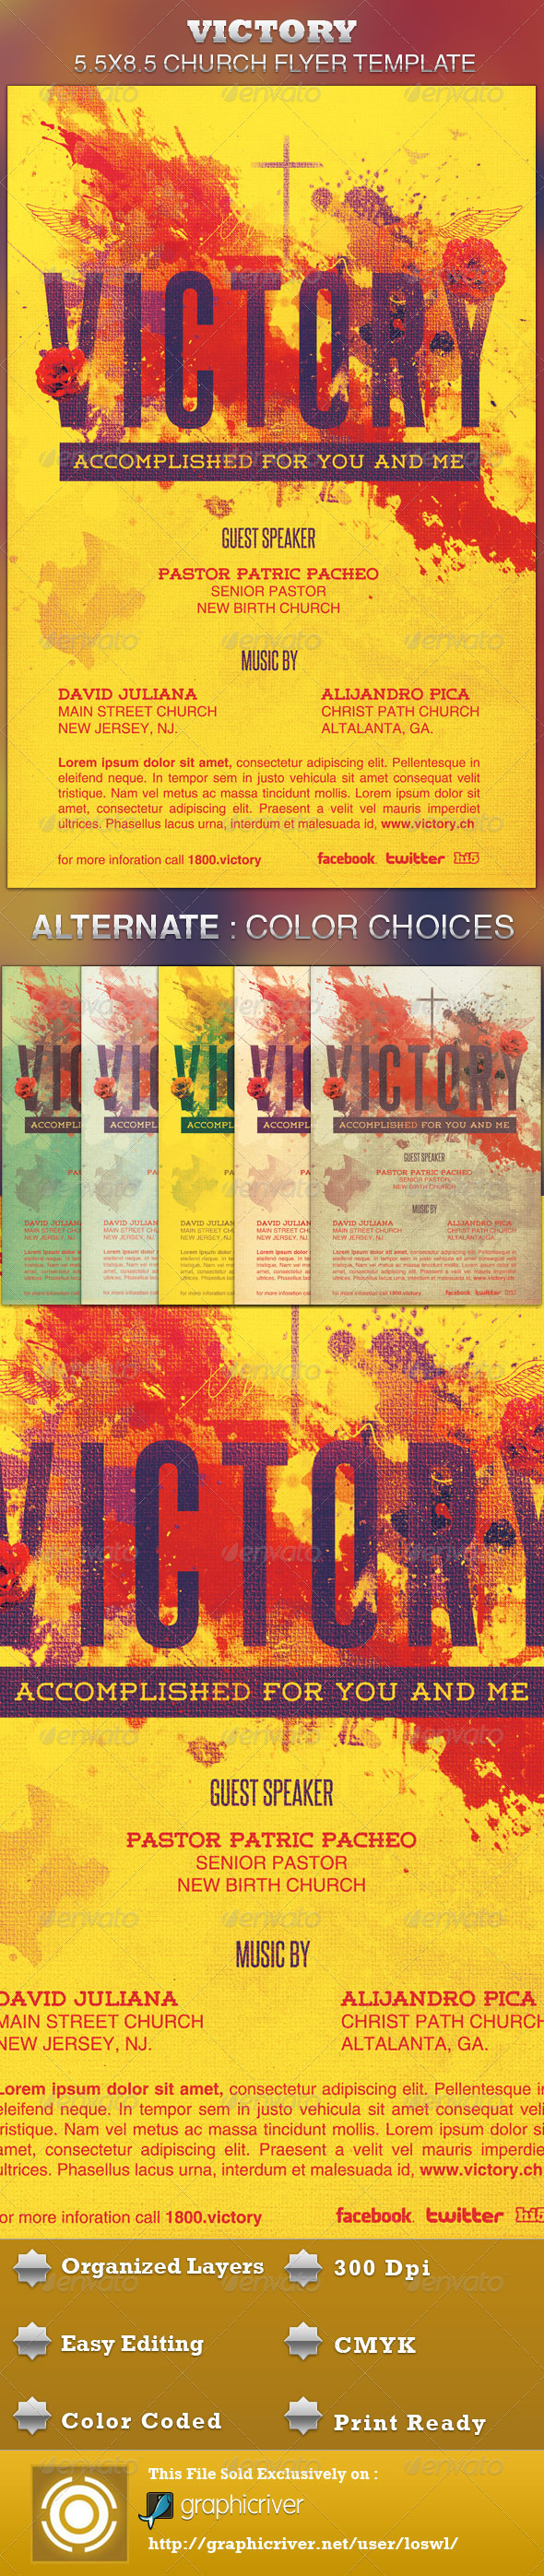 Victory Church Flyer Template  - Church Flyers